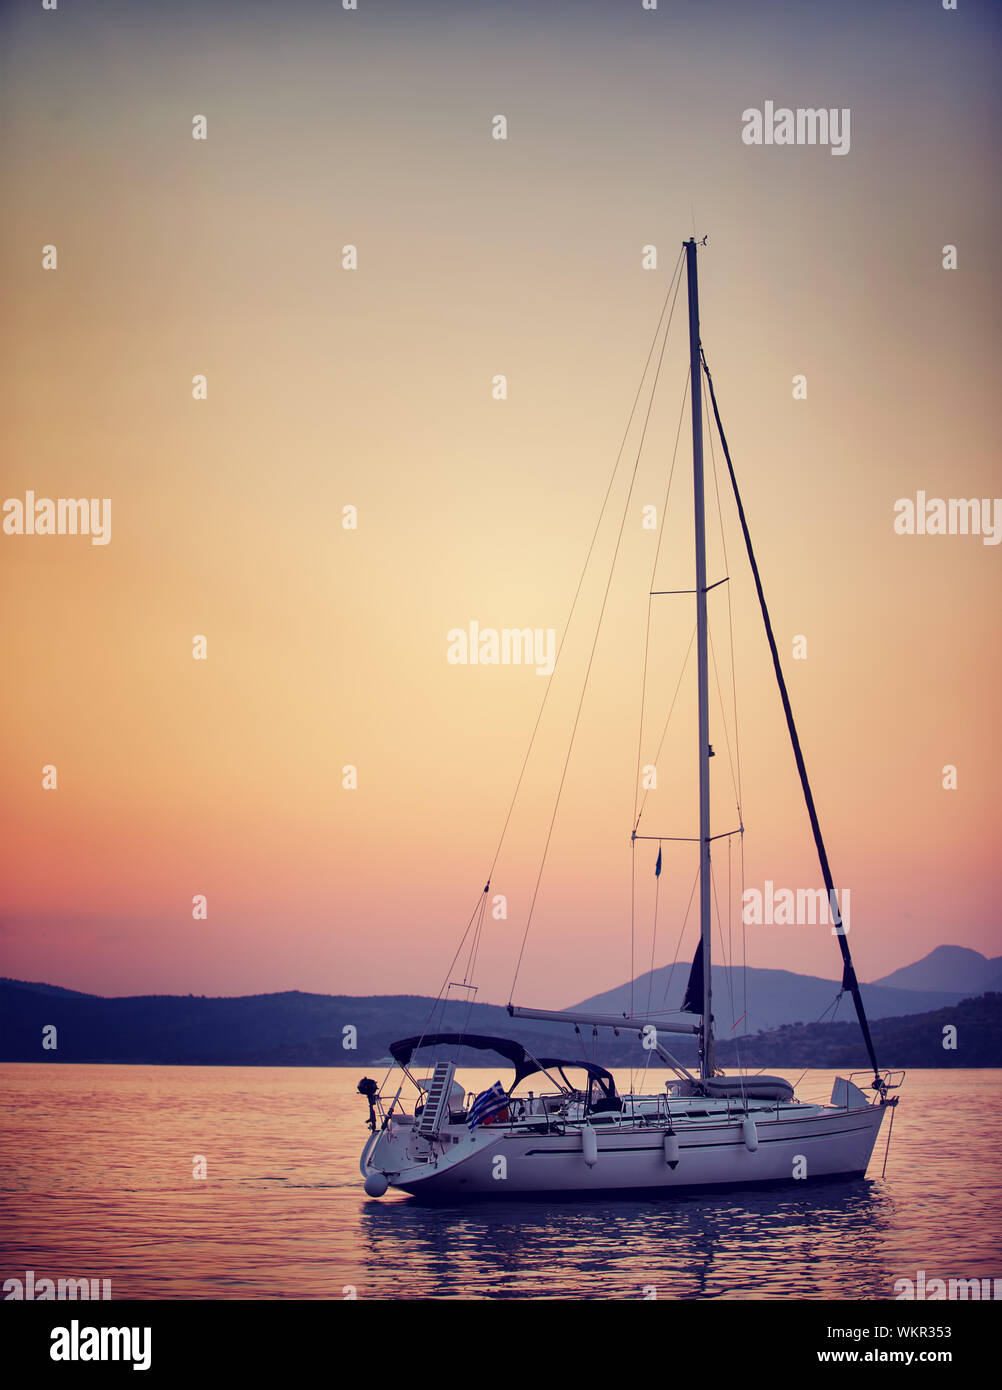 Luxury sailboat in the sea in beautiful sunset light, interesting summer adventure, romantic date on the water, travel and tourism concept Stock Photo